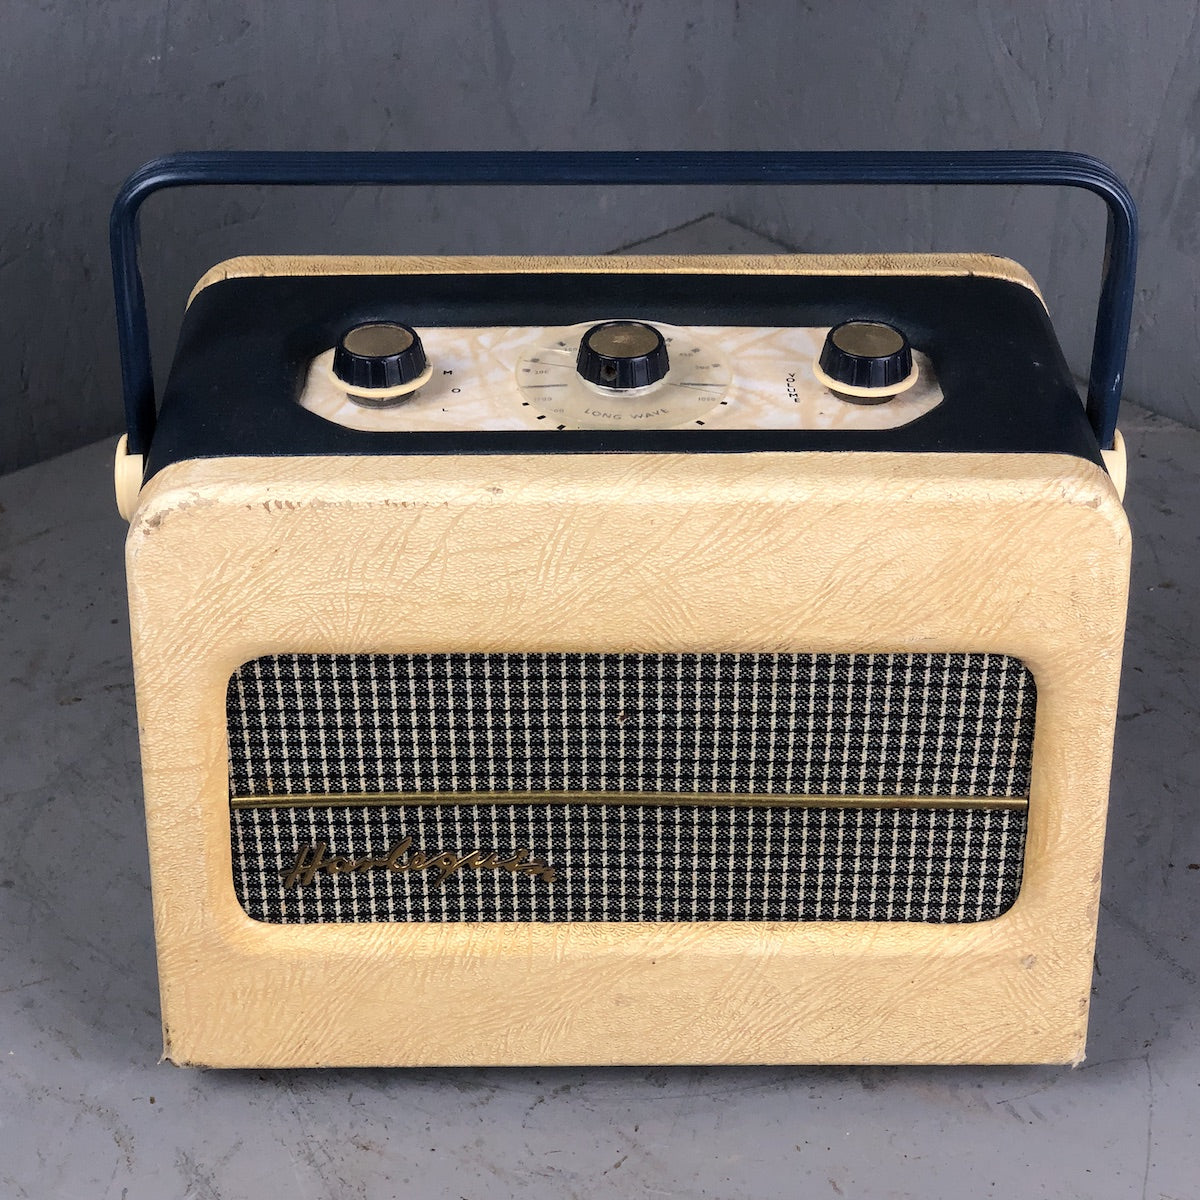 Berec Harlequin 1956 Vintage Radio - converted to Bluetooth